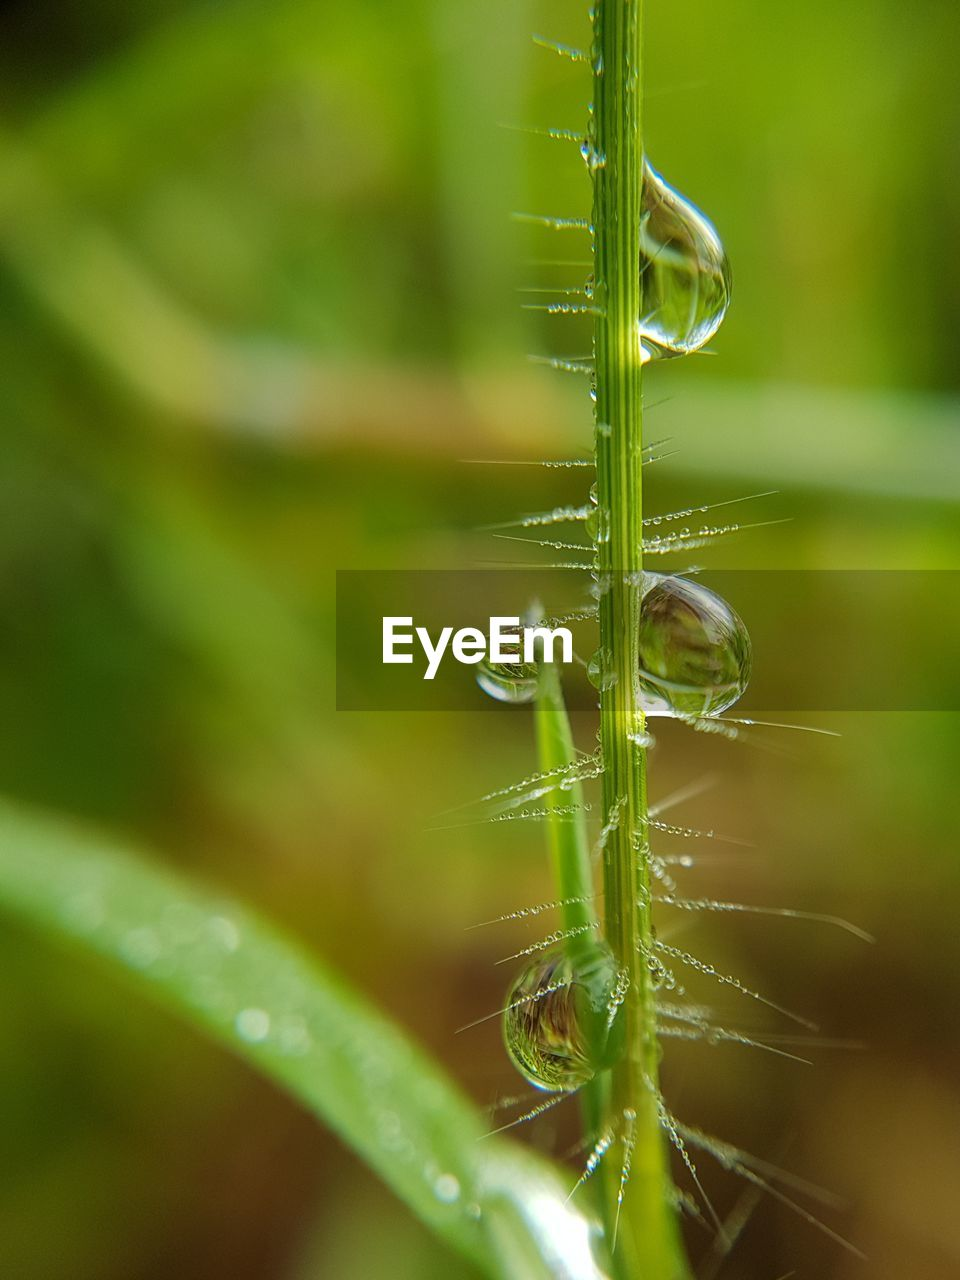 plant, green color, selective focus, growth, close-up, nature, beauty in nature, no people, drop, day, grass, freshness, vulnerability, water, fragility, plant part, wet, leaf, blade of grass, outdoors, purity, dew